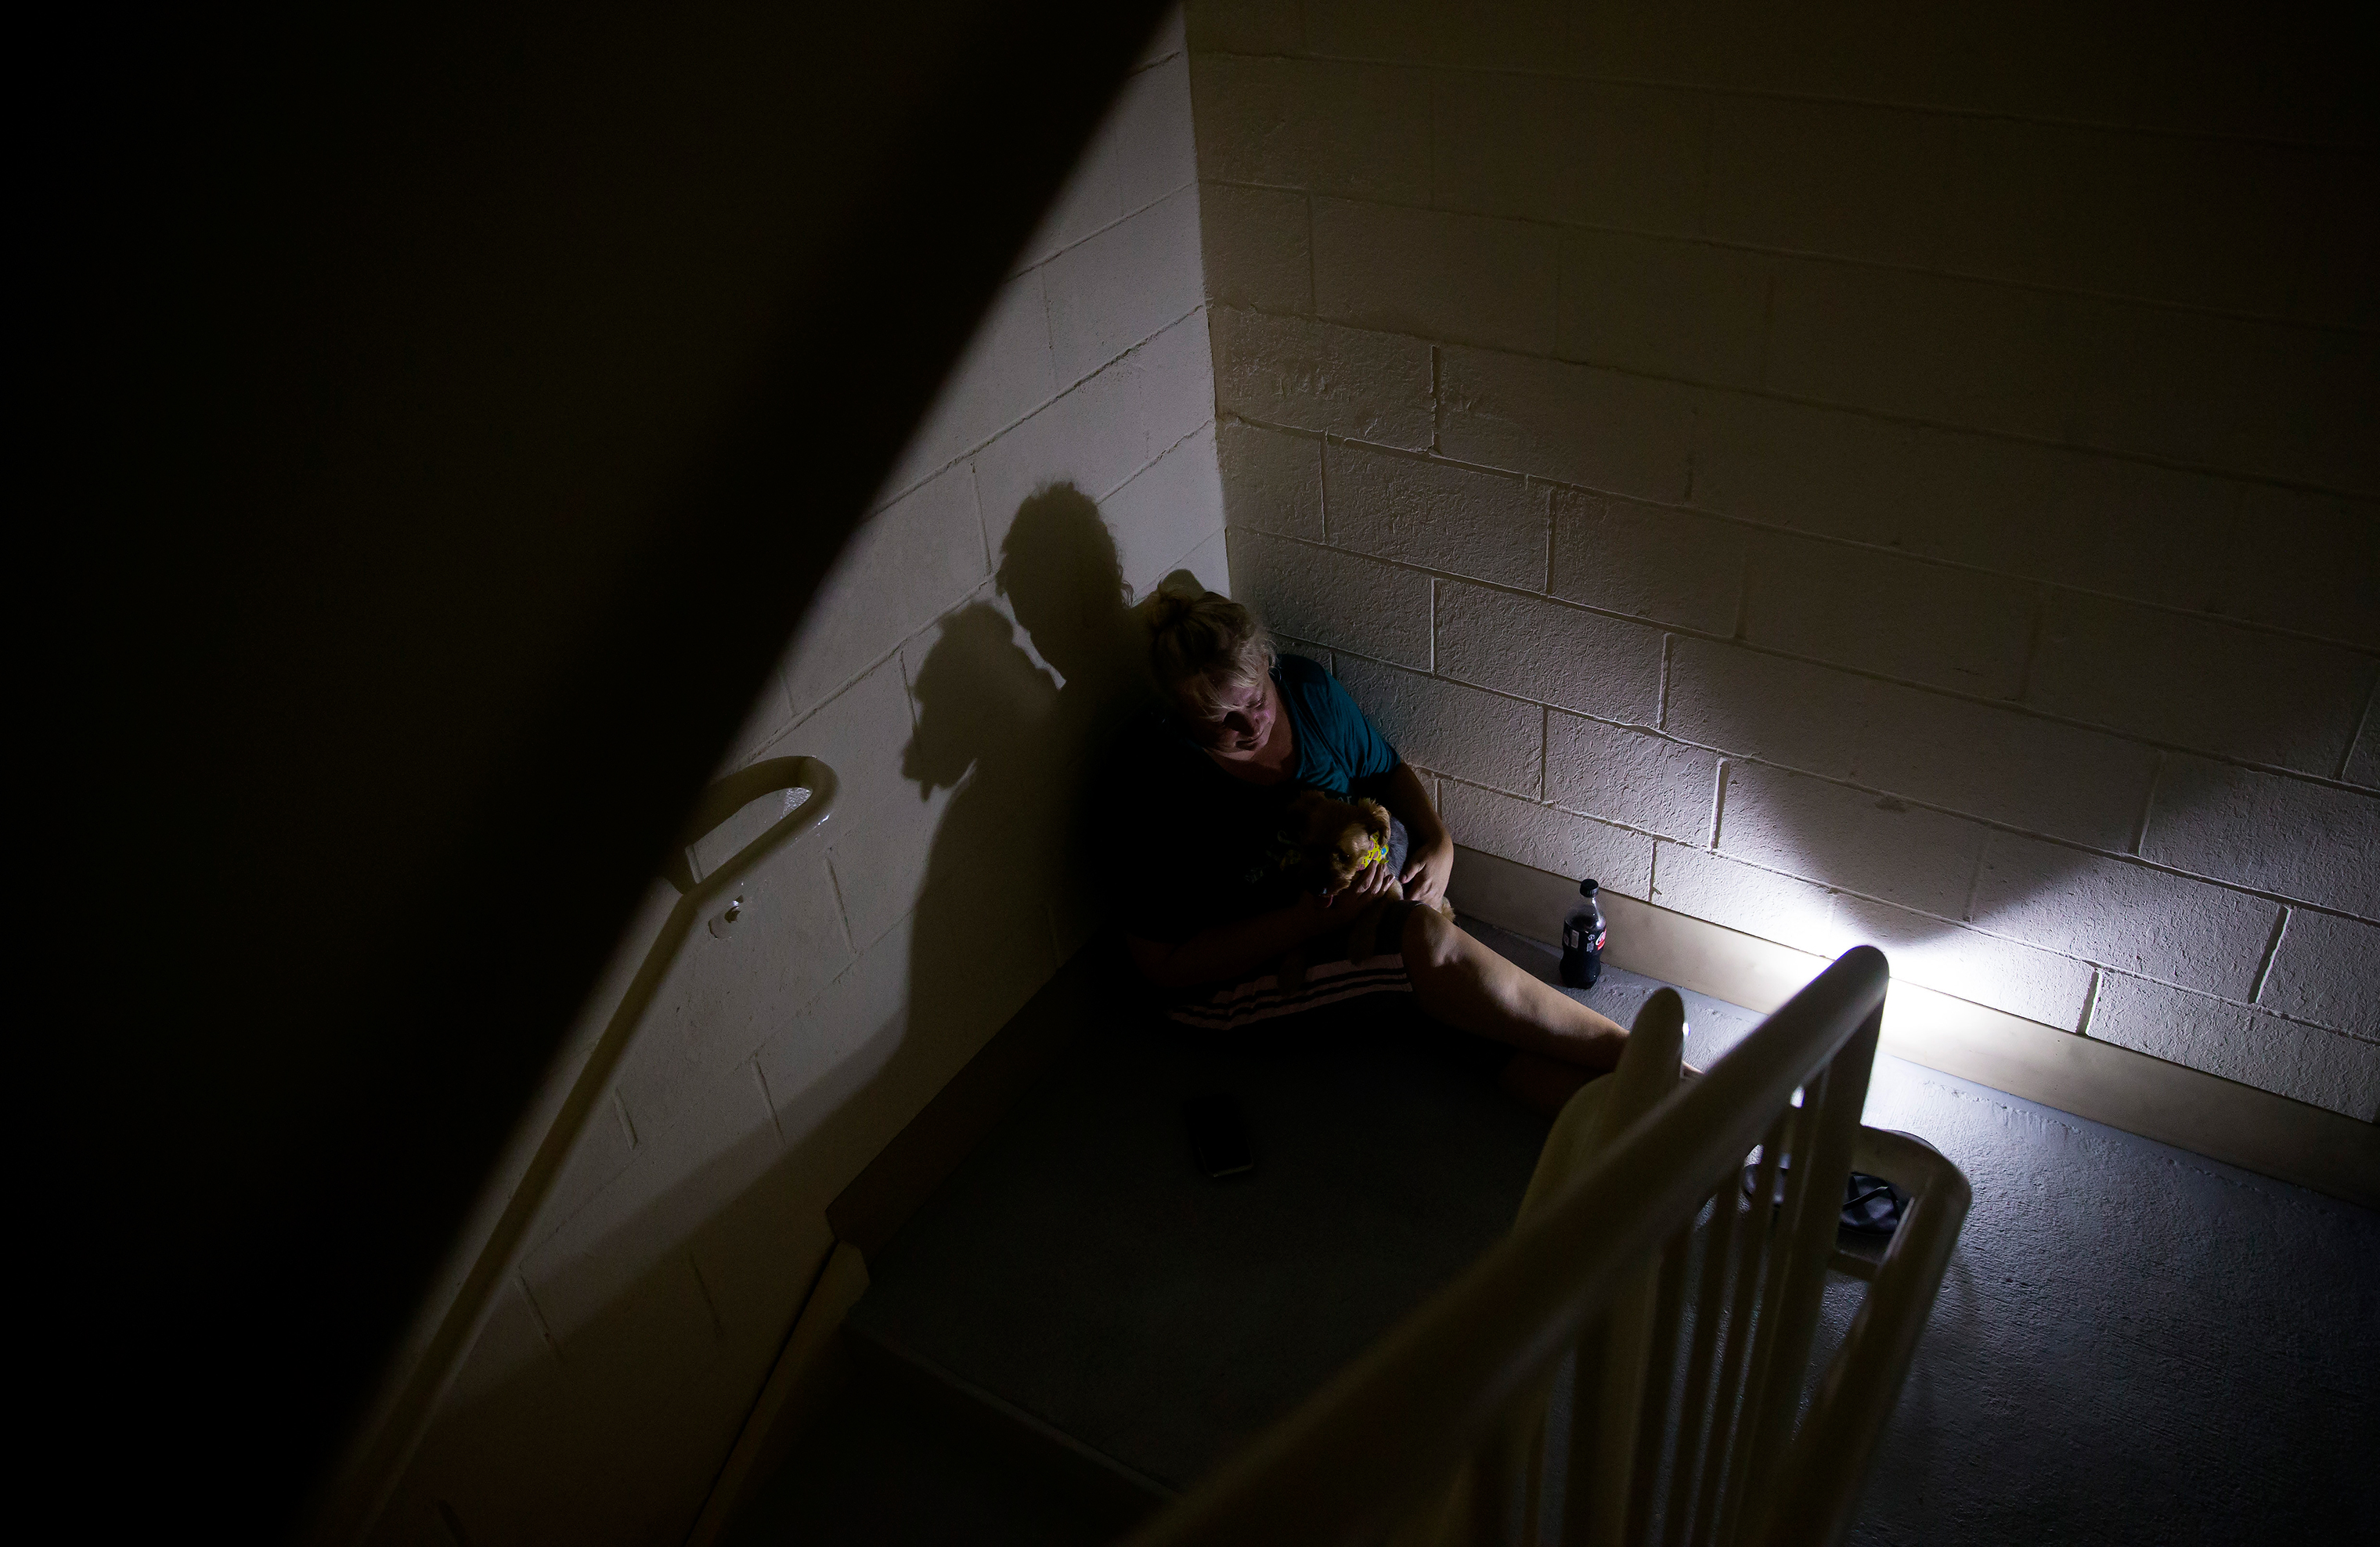 A woman rides out Hurricane Matthew in a hotel stairwell in Panama City Beach, Fla., Oct. 10, 2018.